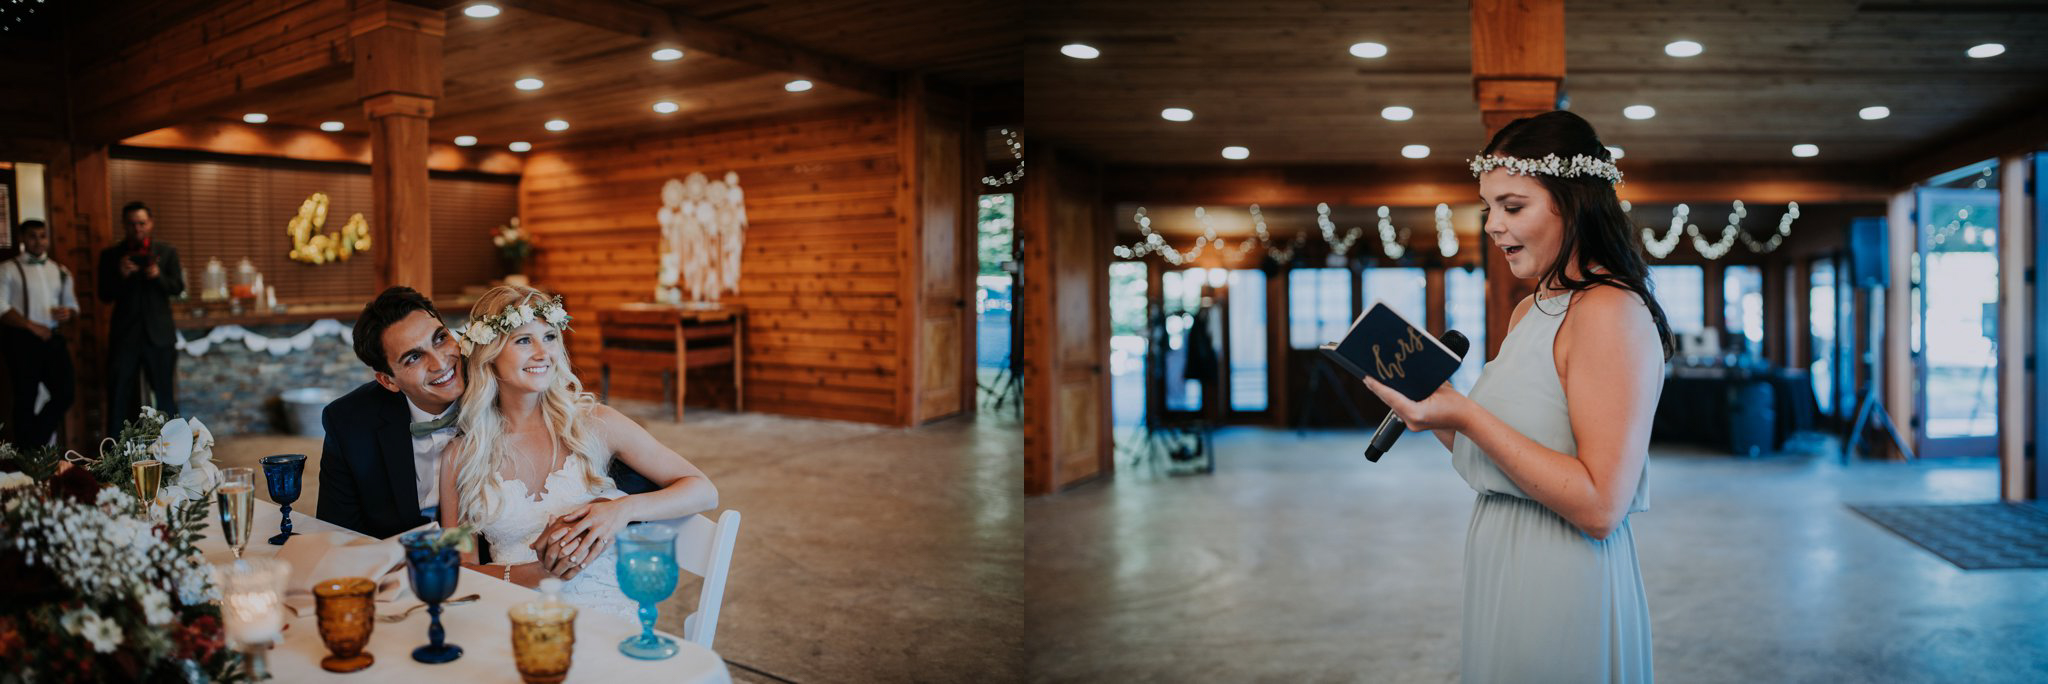 trinity-tree-farm-issaquah-washington-wedding-seattle-lifestyle-photographer-caitlyn-nikula-photography-86.jpg